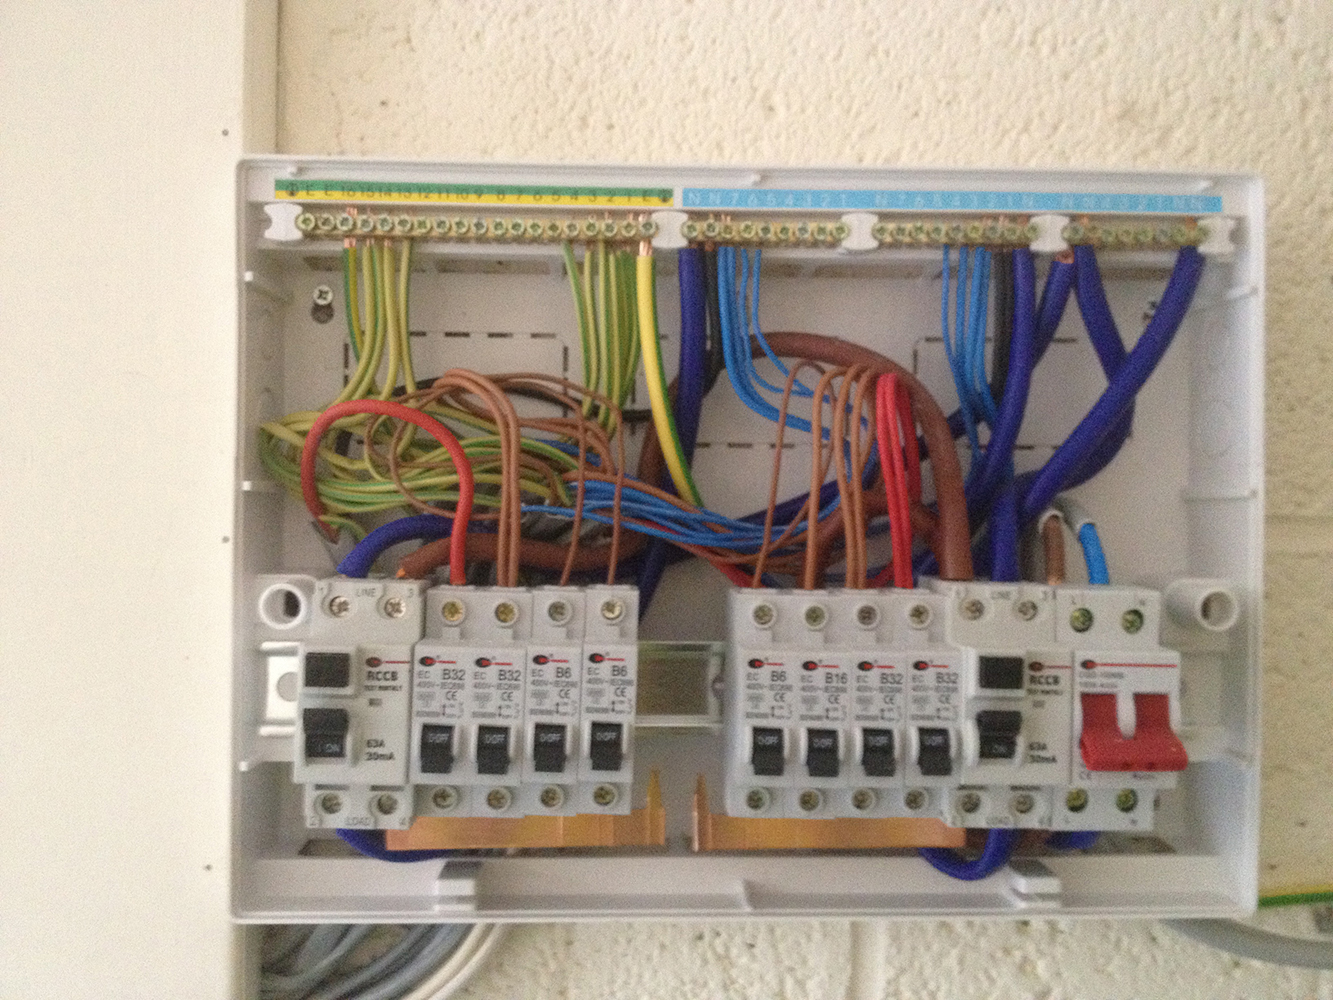 mk dual rcd consumer unit wiring diagram for trailer lights and electric brakes schema gallery buzz electrical services electricity test